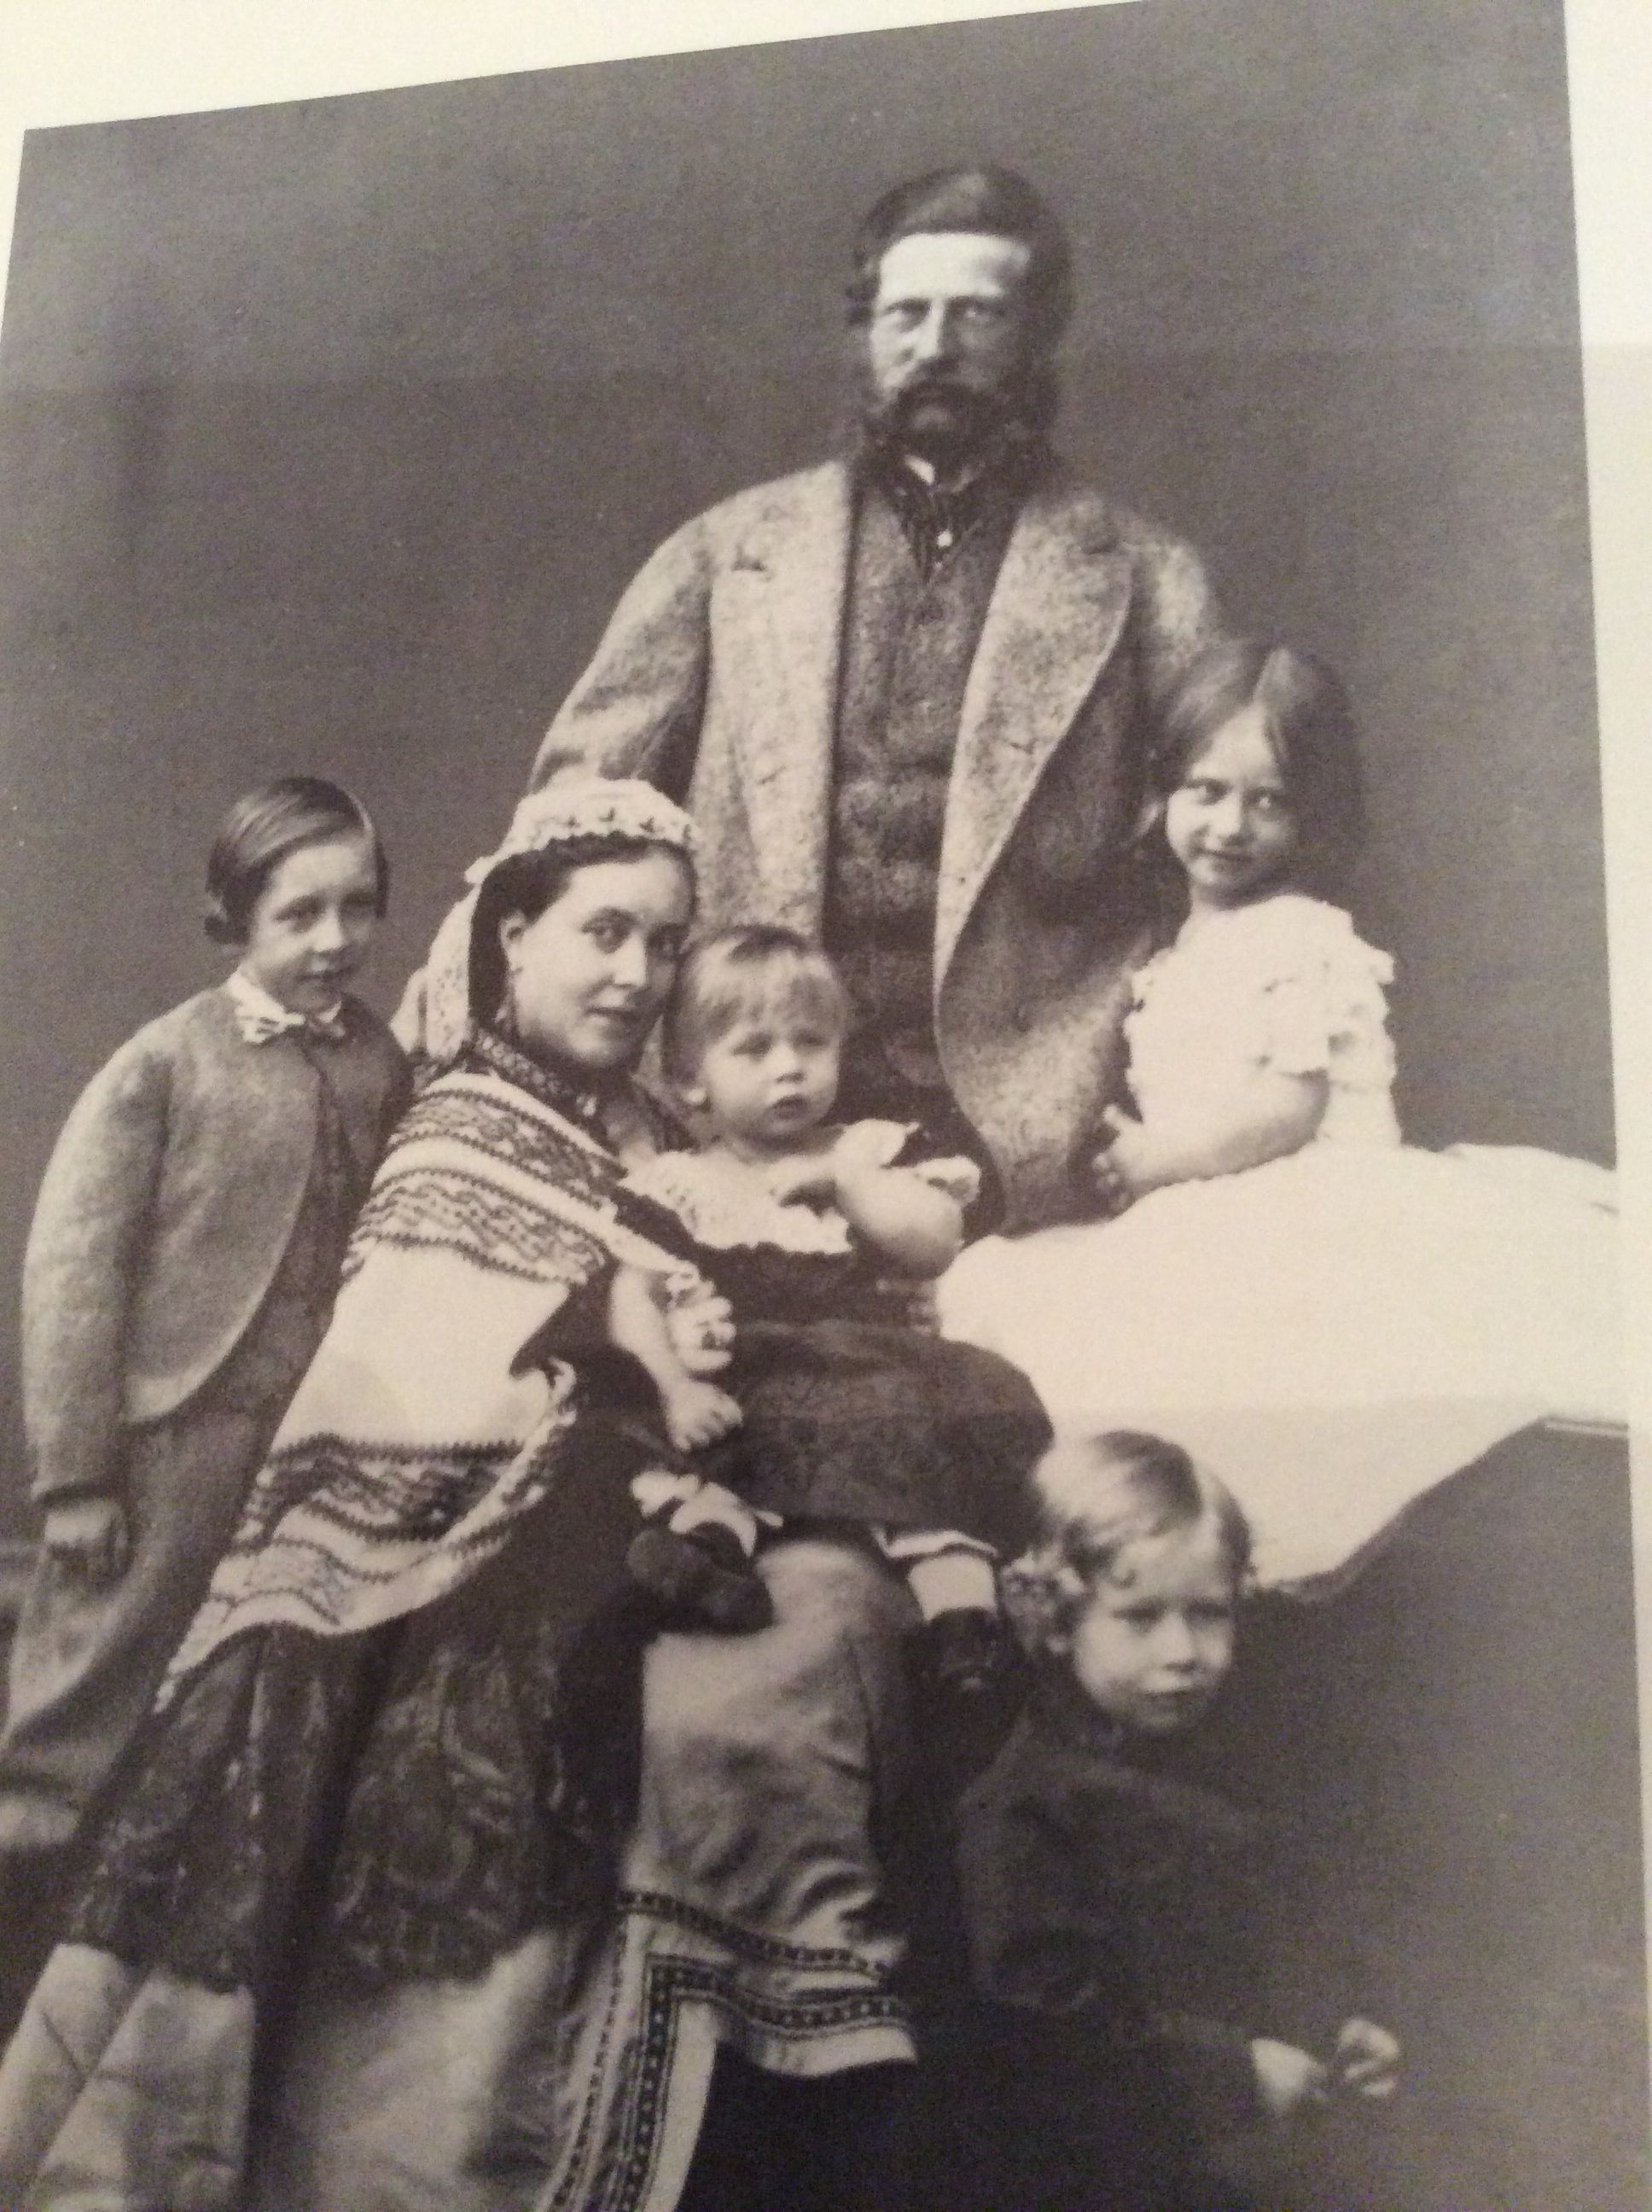 fritz and vicky  crown prince and princess of prussia in 1865 with their children  l to r